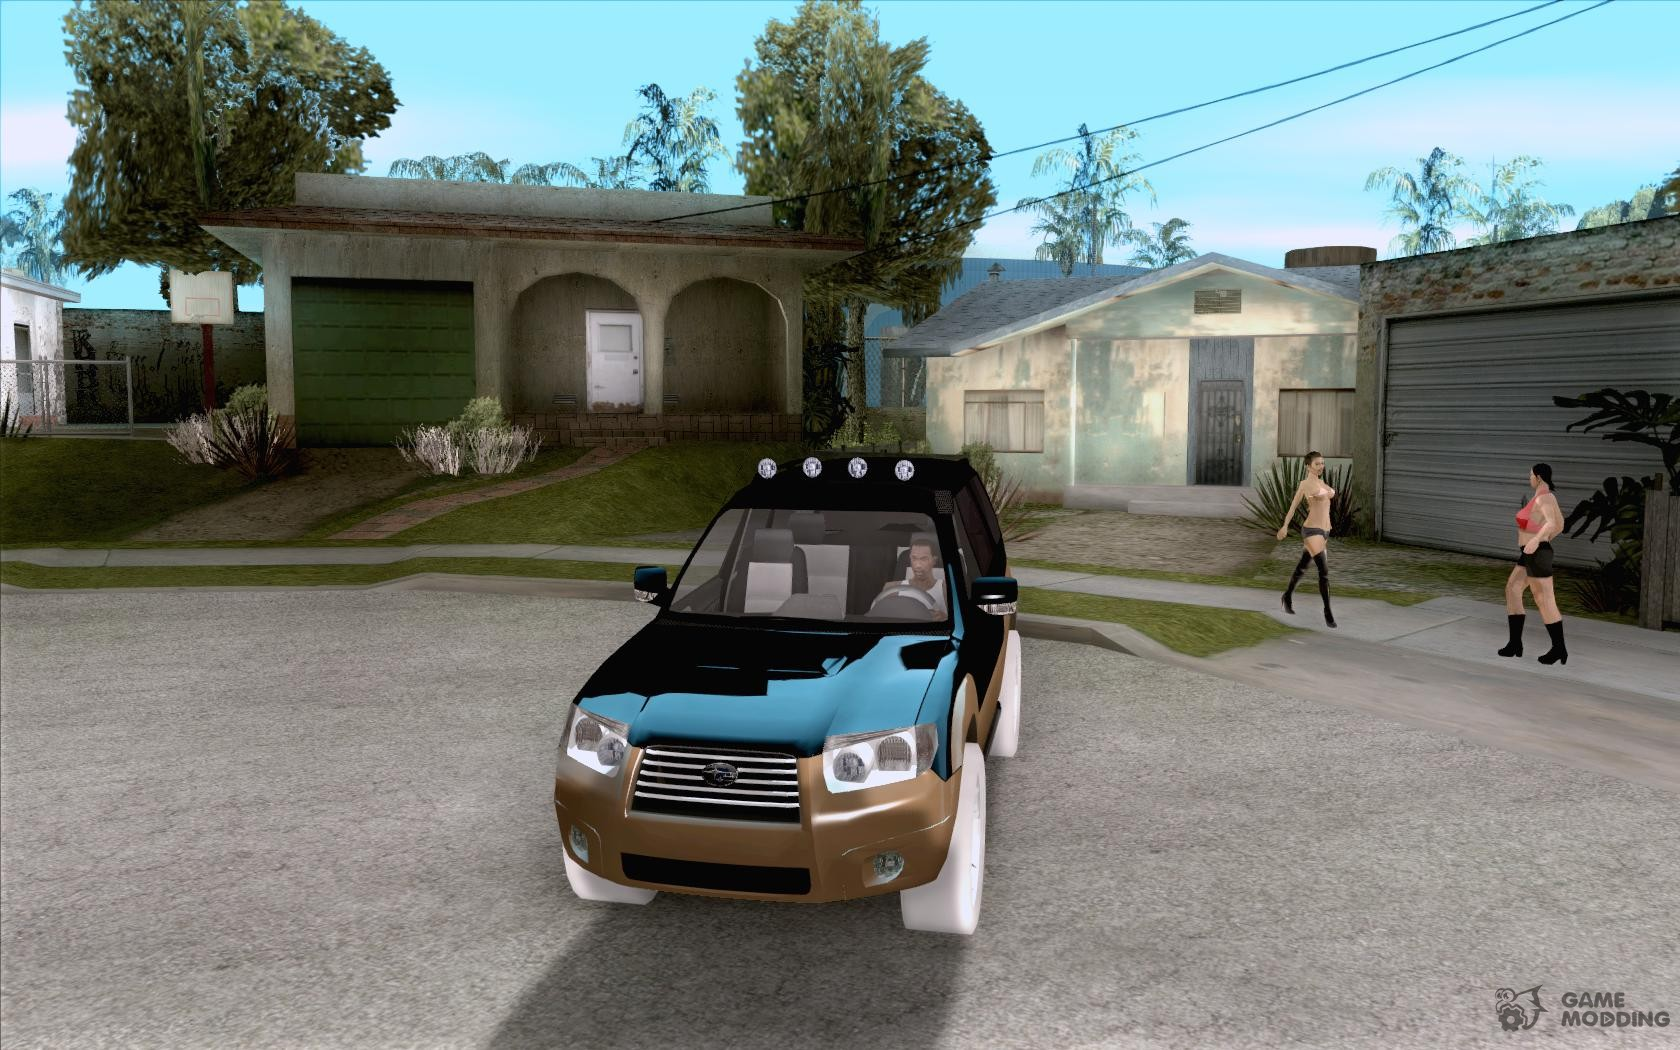 Forester cross sport 2005 for gta san andreas subaru forester cross sport 2005 for gta san andreas vanachro Choice Image